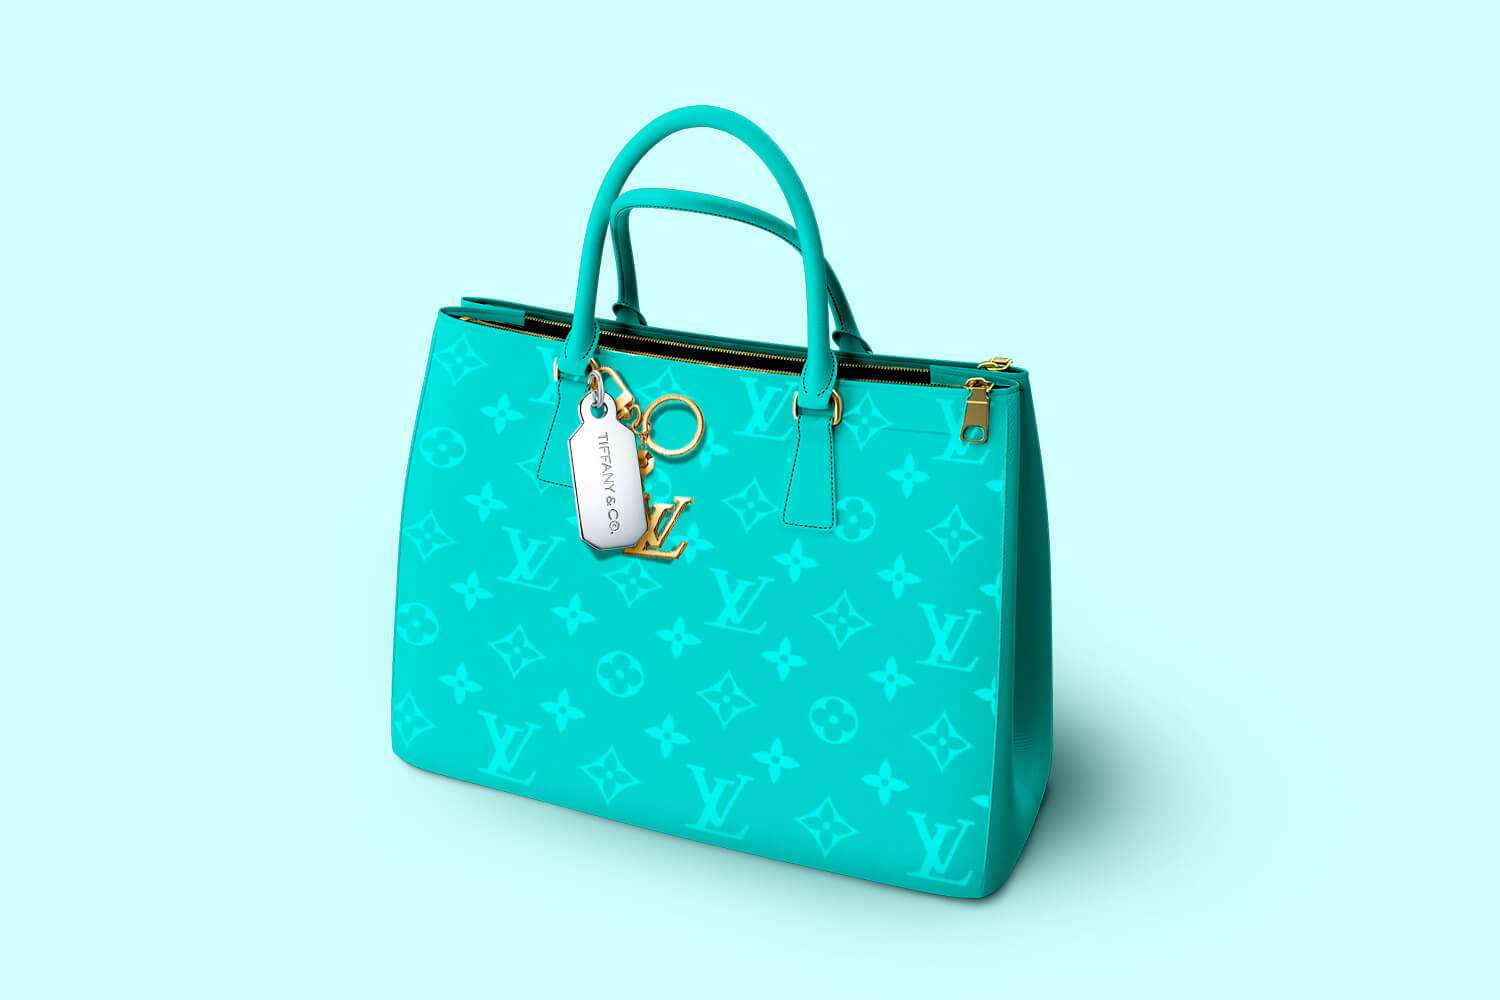 Louis Vuitton bag in Tiffany coloring